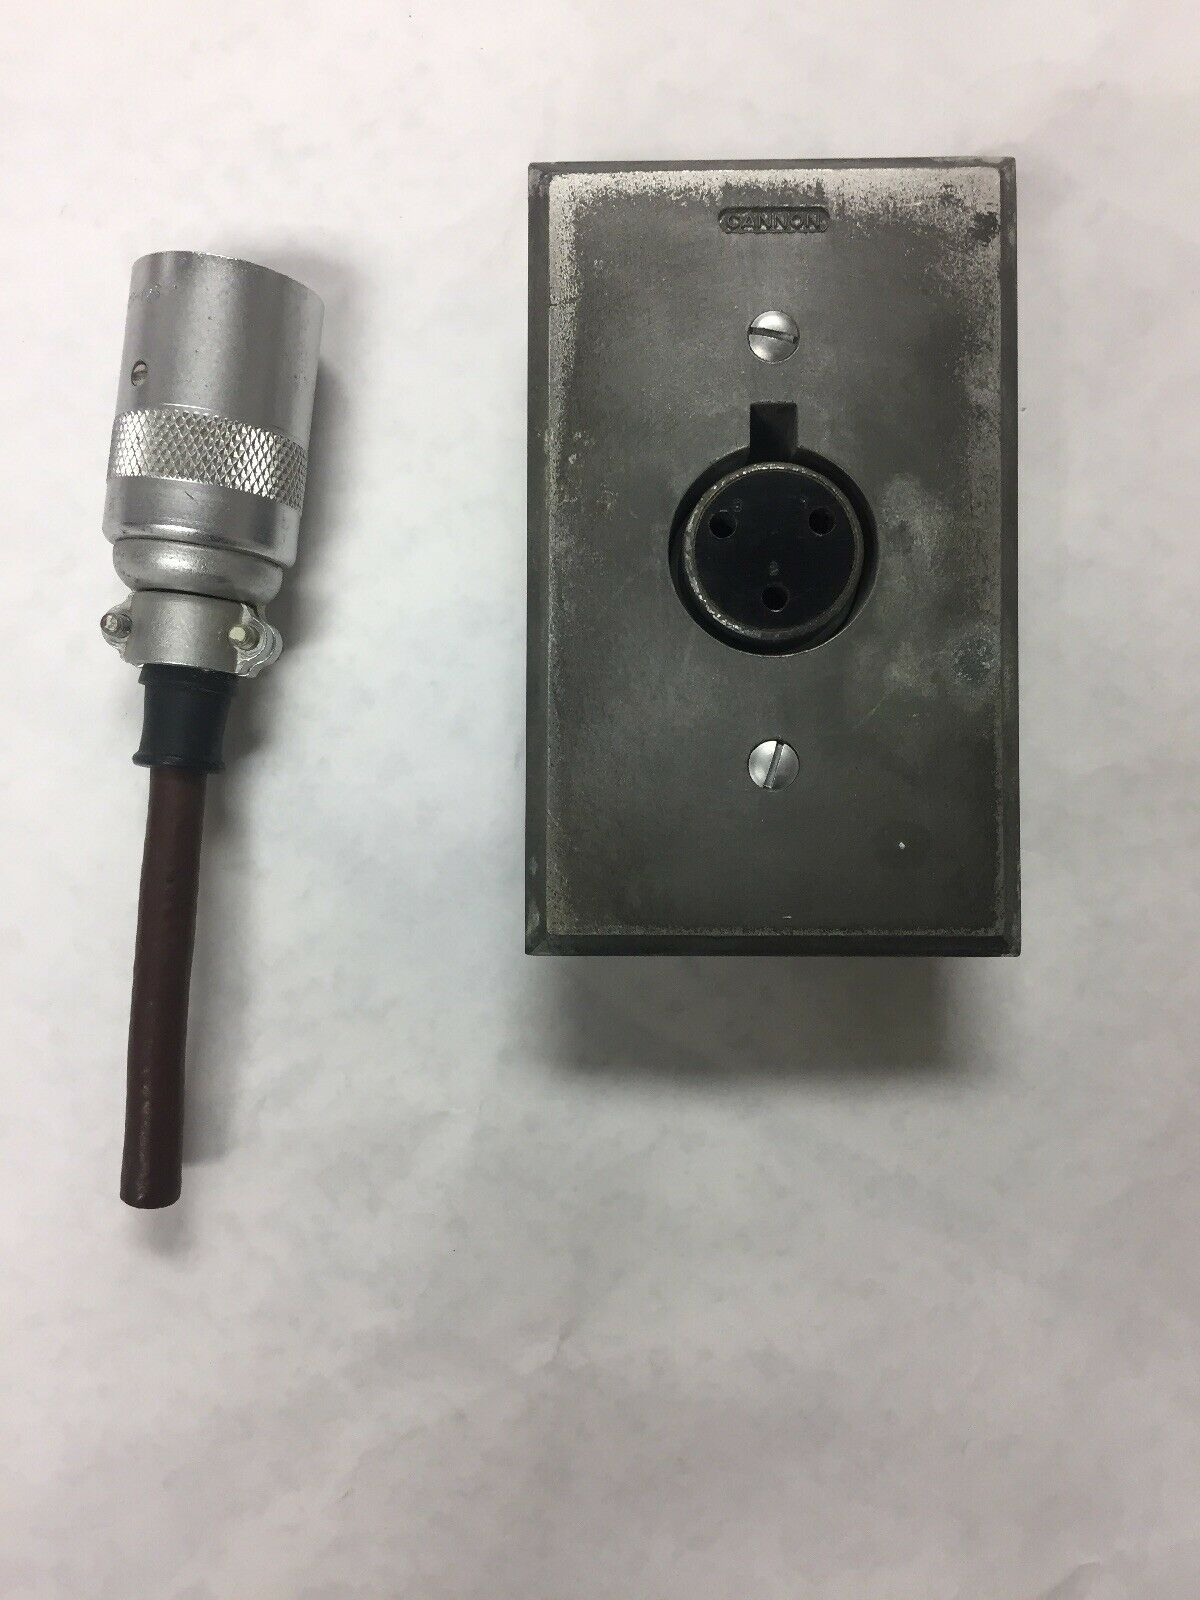 Vtg Cannon P3-CG-12-S Microphone 3-Pin Audio Studio Connector Metal Cover Lot